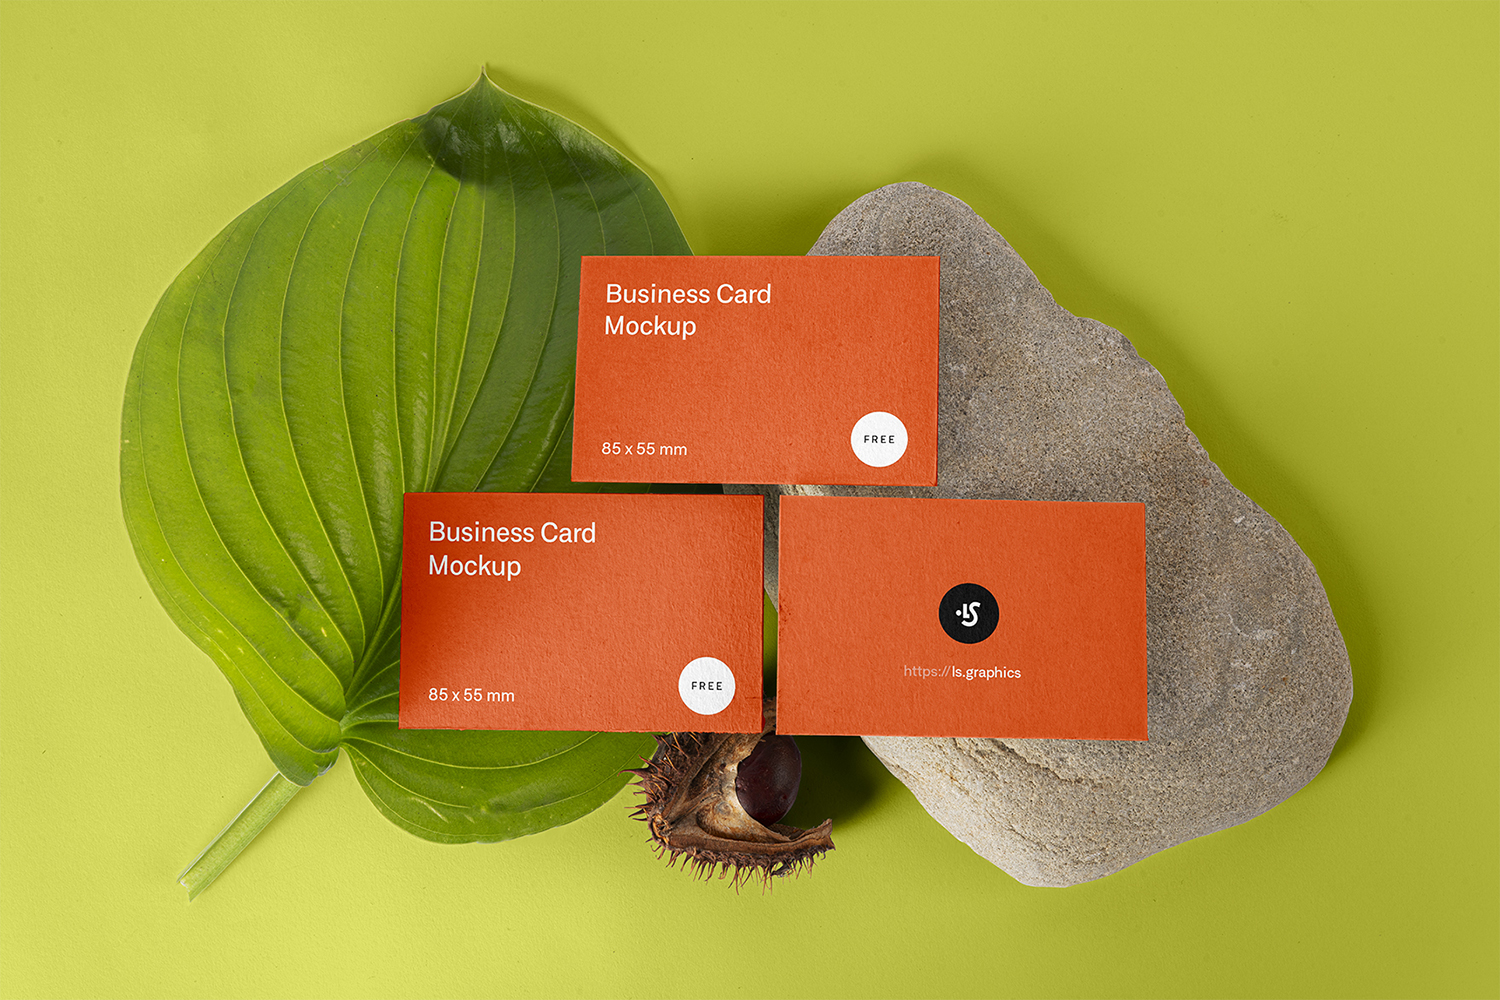 Floral Three Business Cards Free Mockup